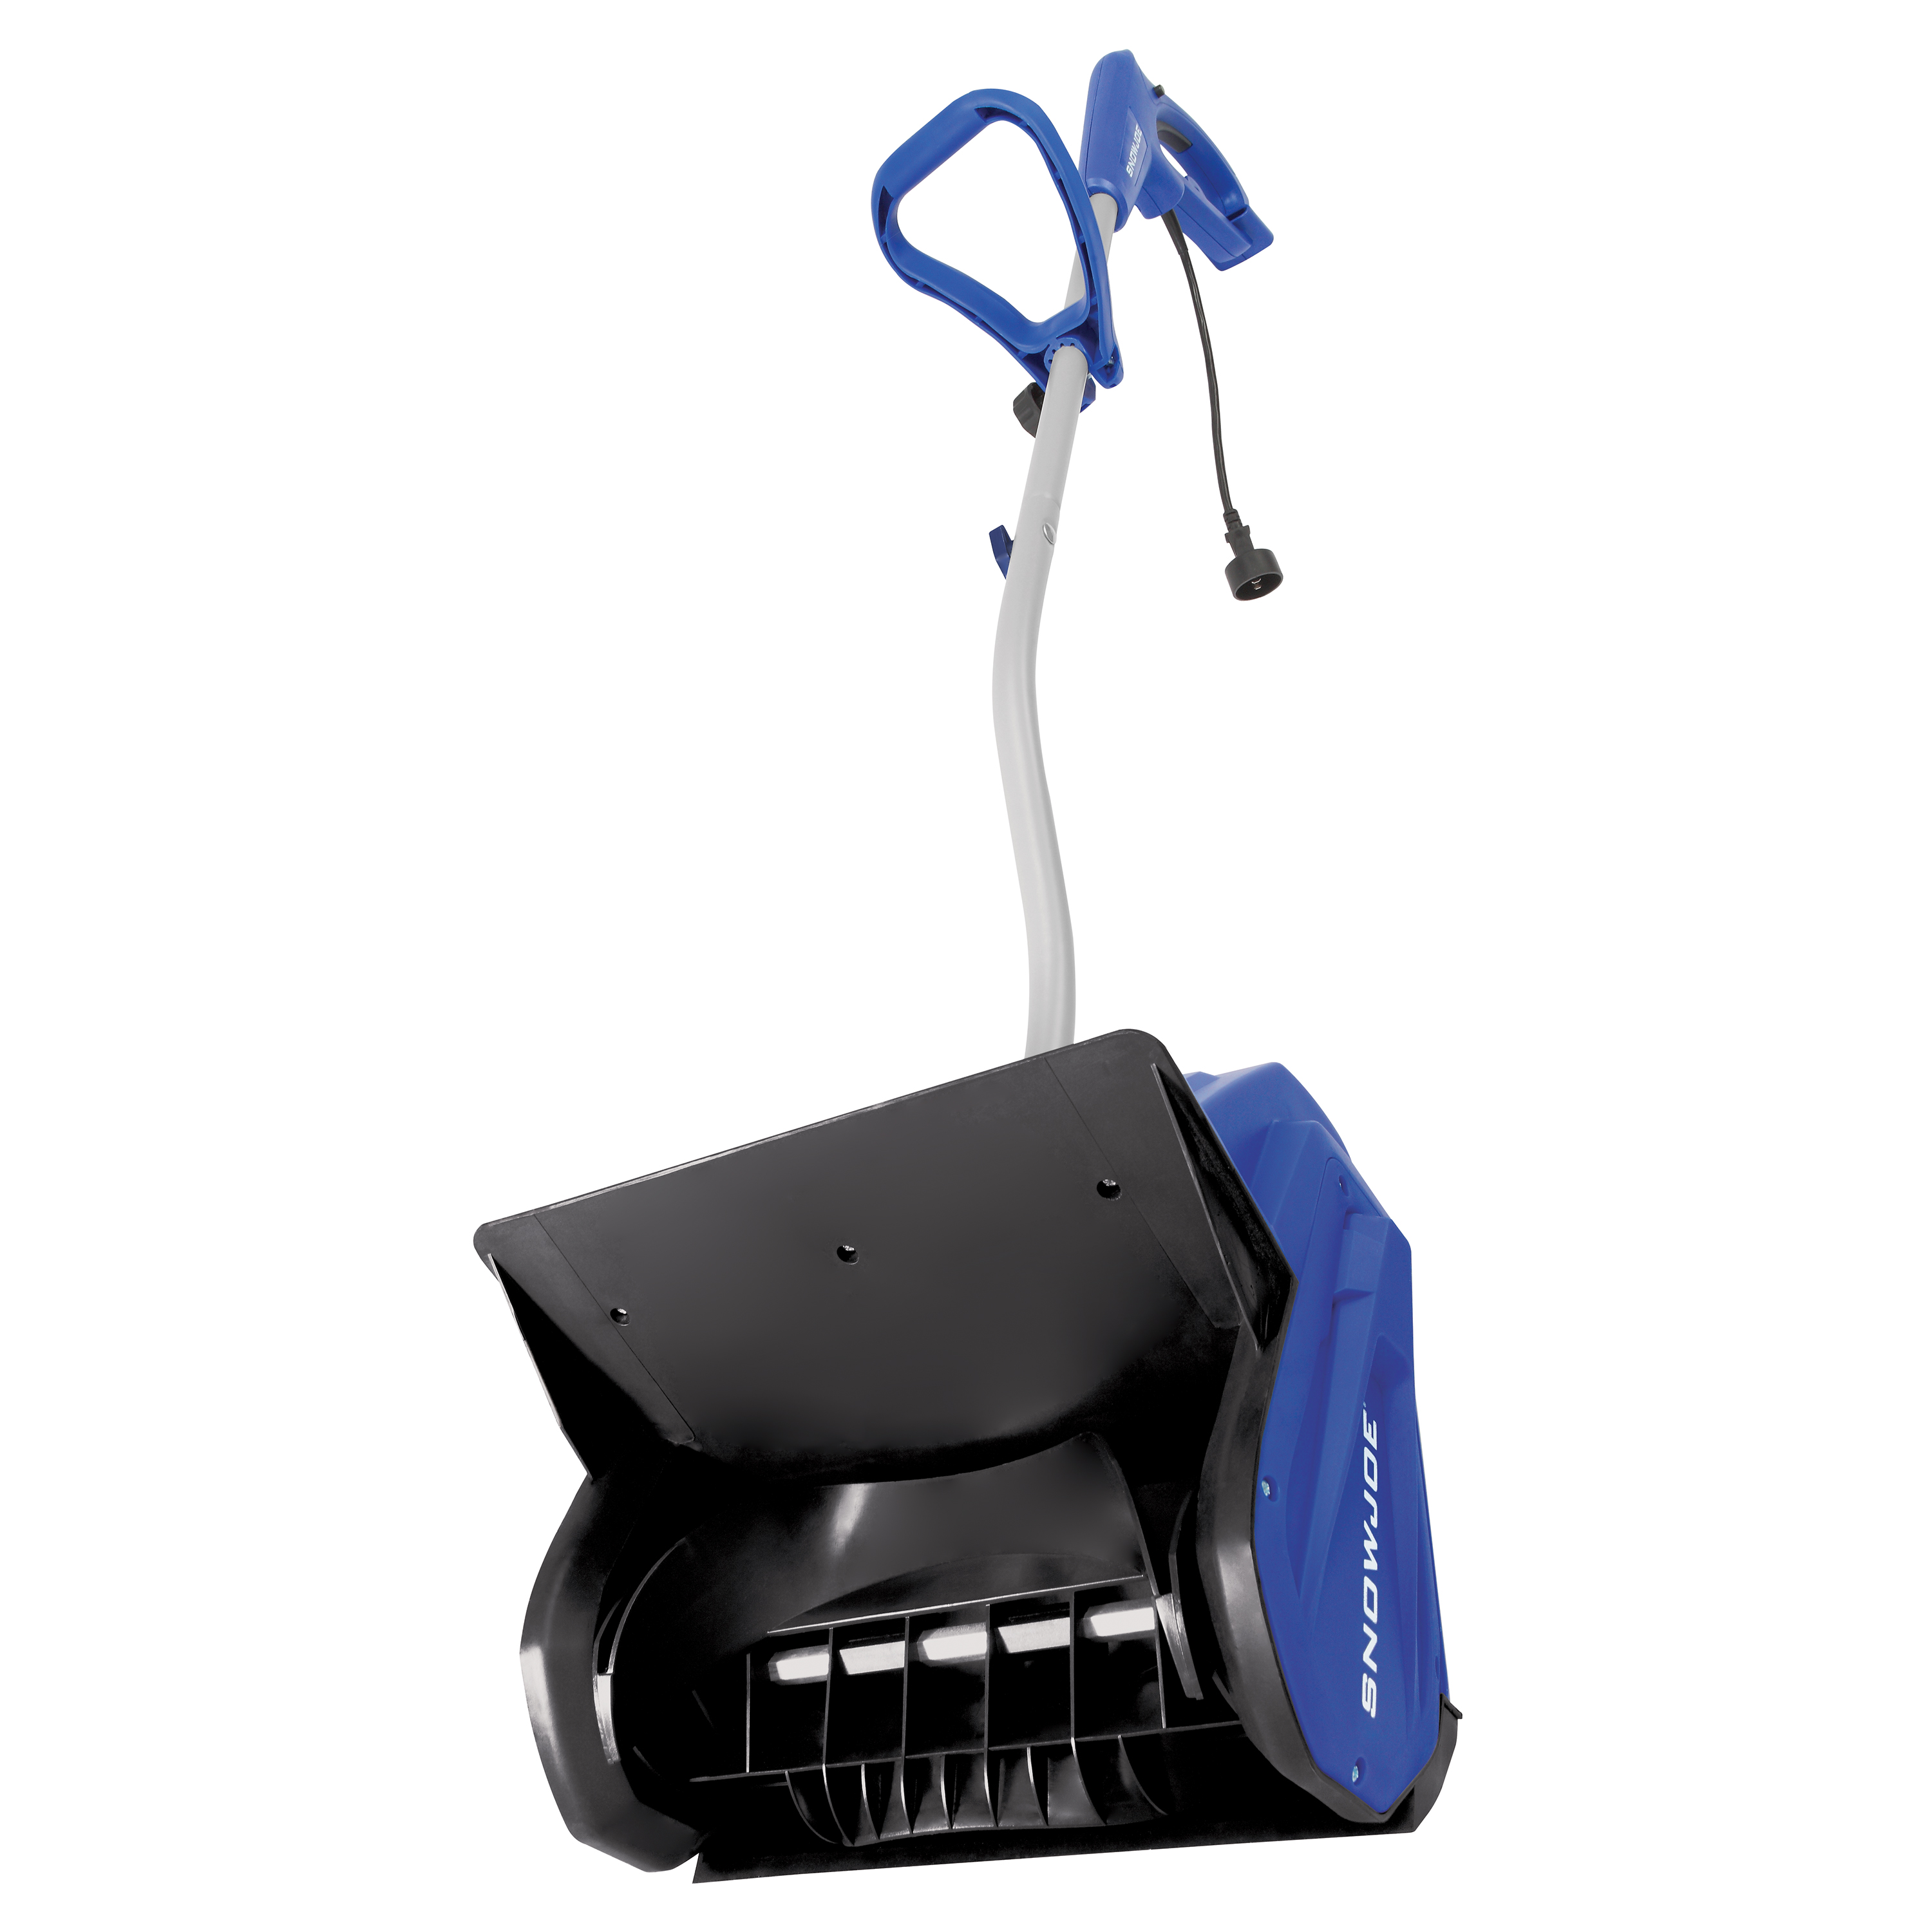 Snow Joe 323E Electric Snow Shovel | 13-Inch · 10 Amp Motor